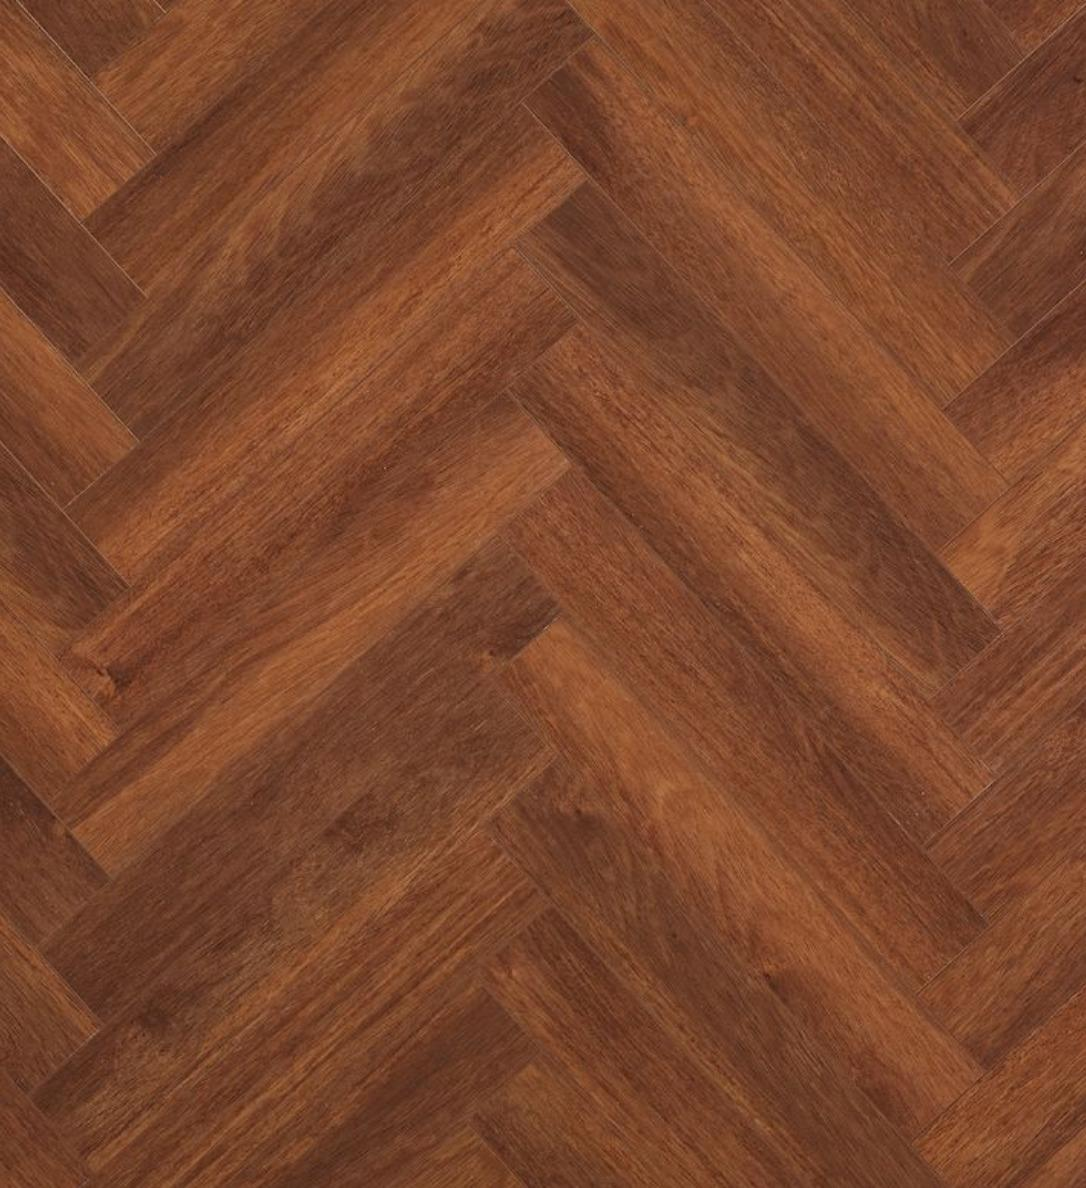 berry alloc chateau merbau brown parquet herringbone laminate flooring. Black Bedroom Furniture Sets. Home Design Ideas